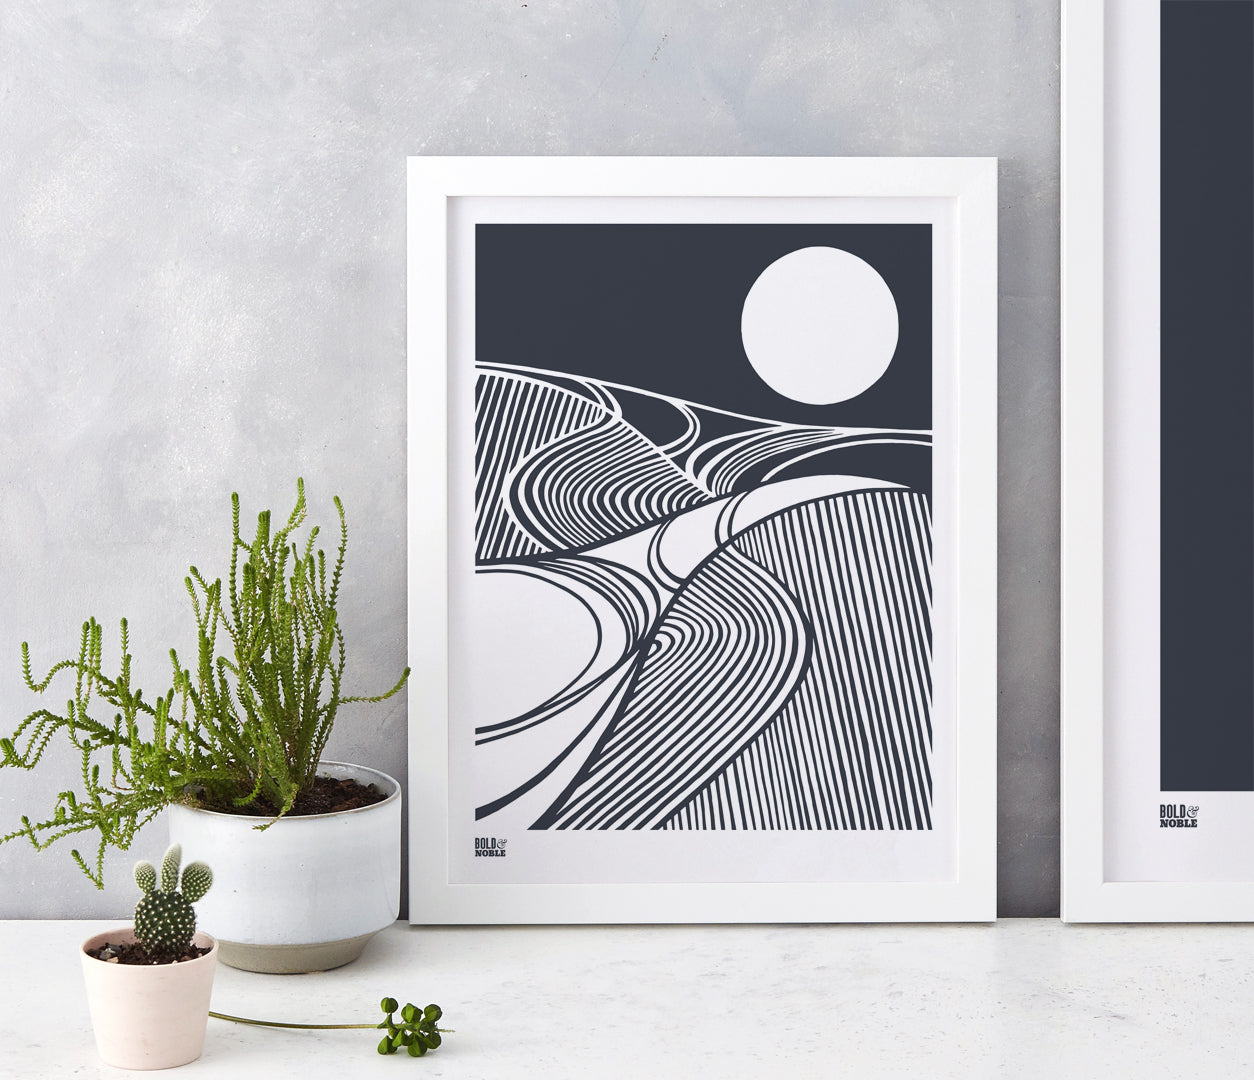 Harvest Field Moon Wall Art Print in Slate Grey, Modern Print Designs for the Home